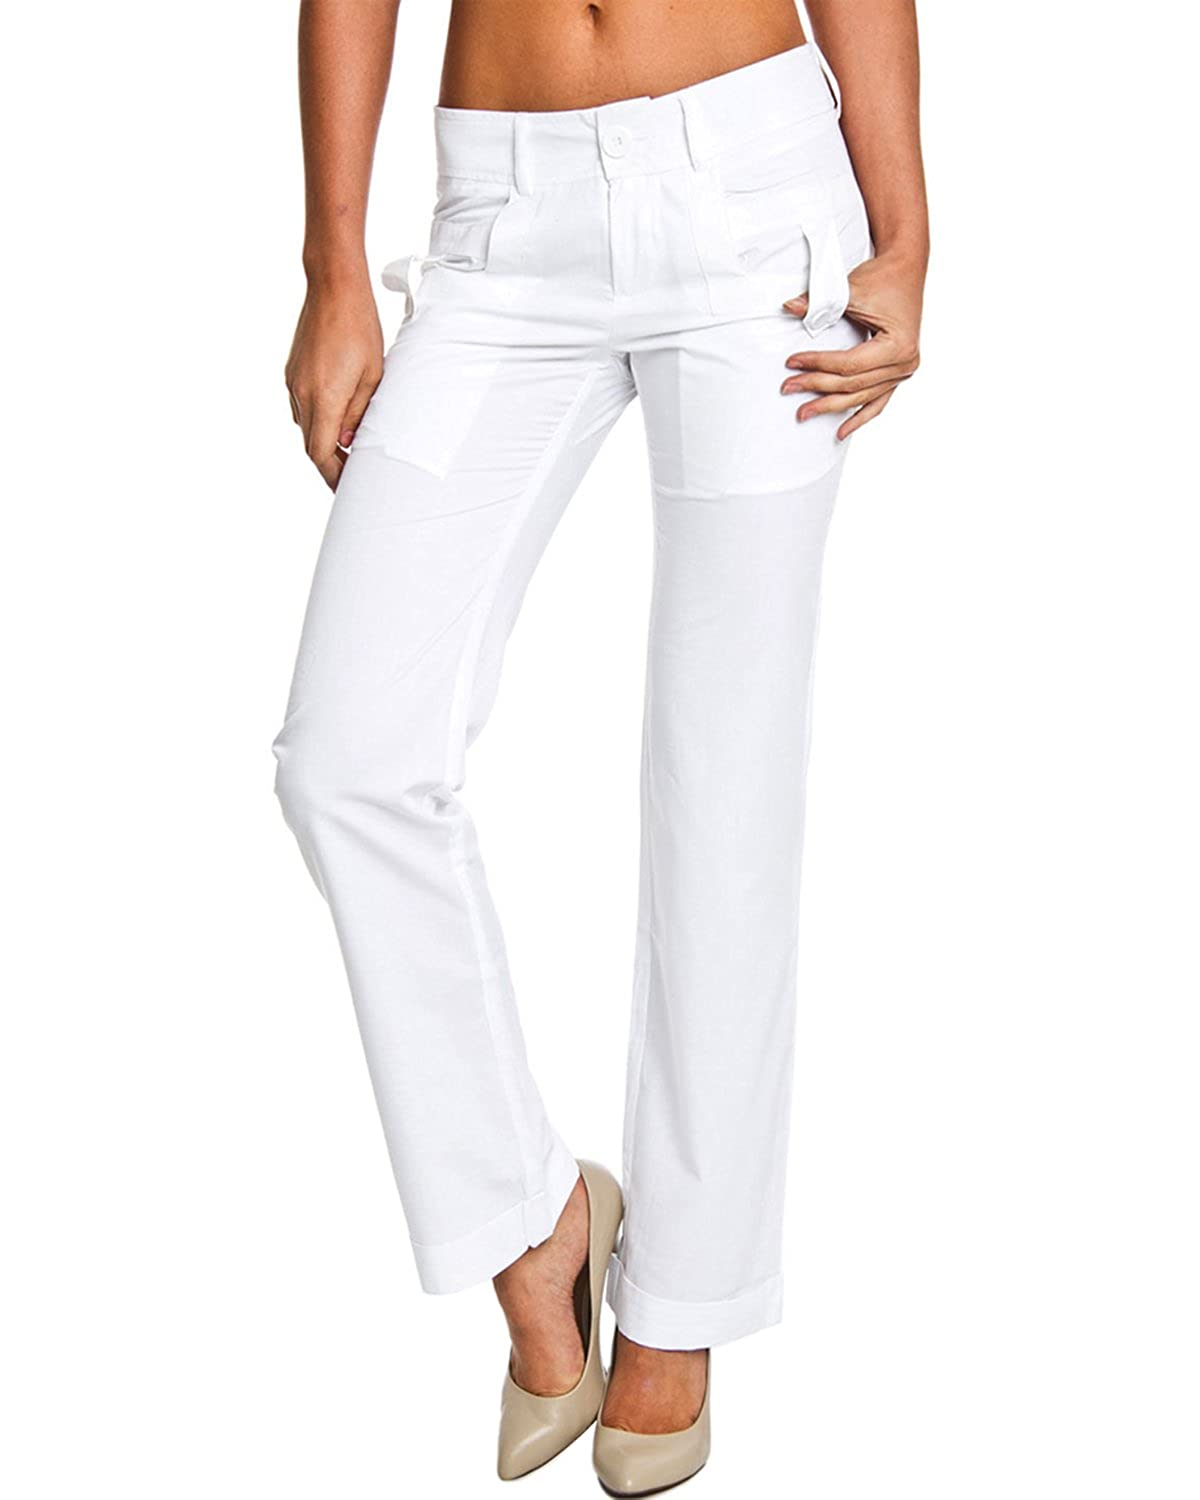 Style NY Women's Button Tab Skinny Fashion Pants